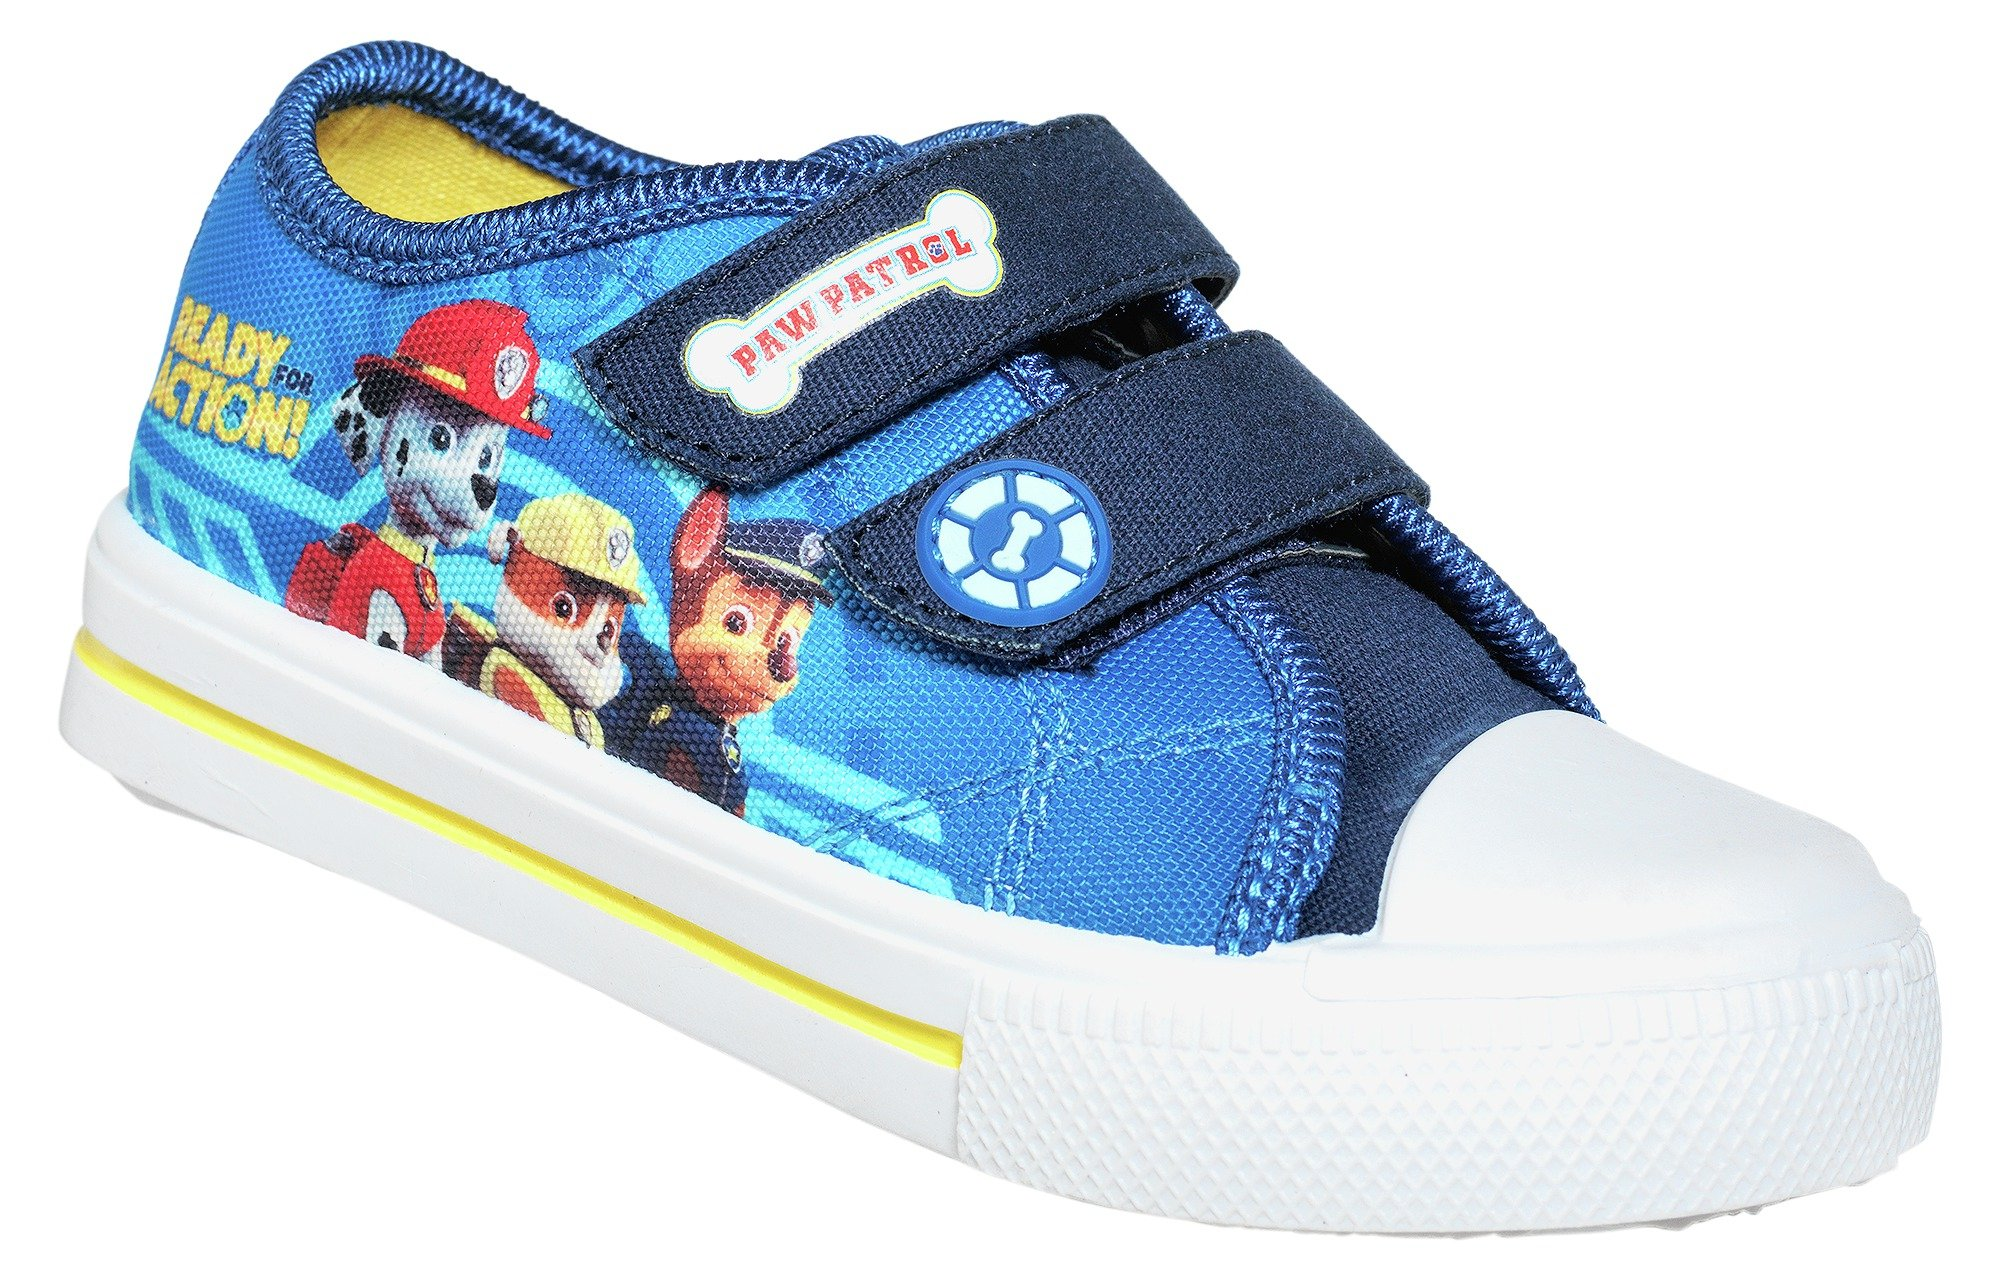 Image of PAW Patrol Blue Canvas Trainers - Size 8